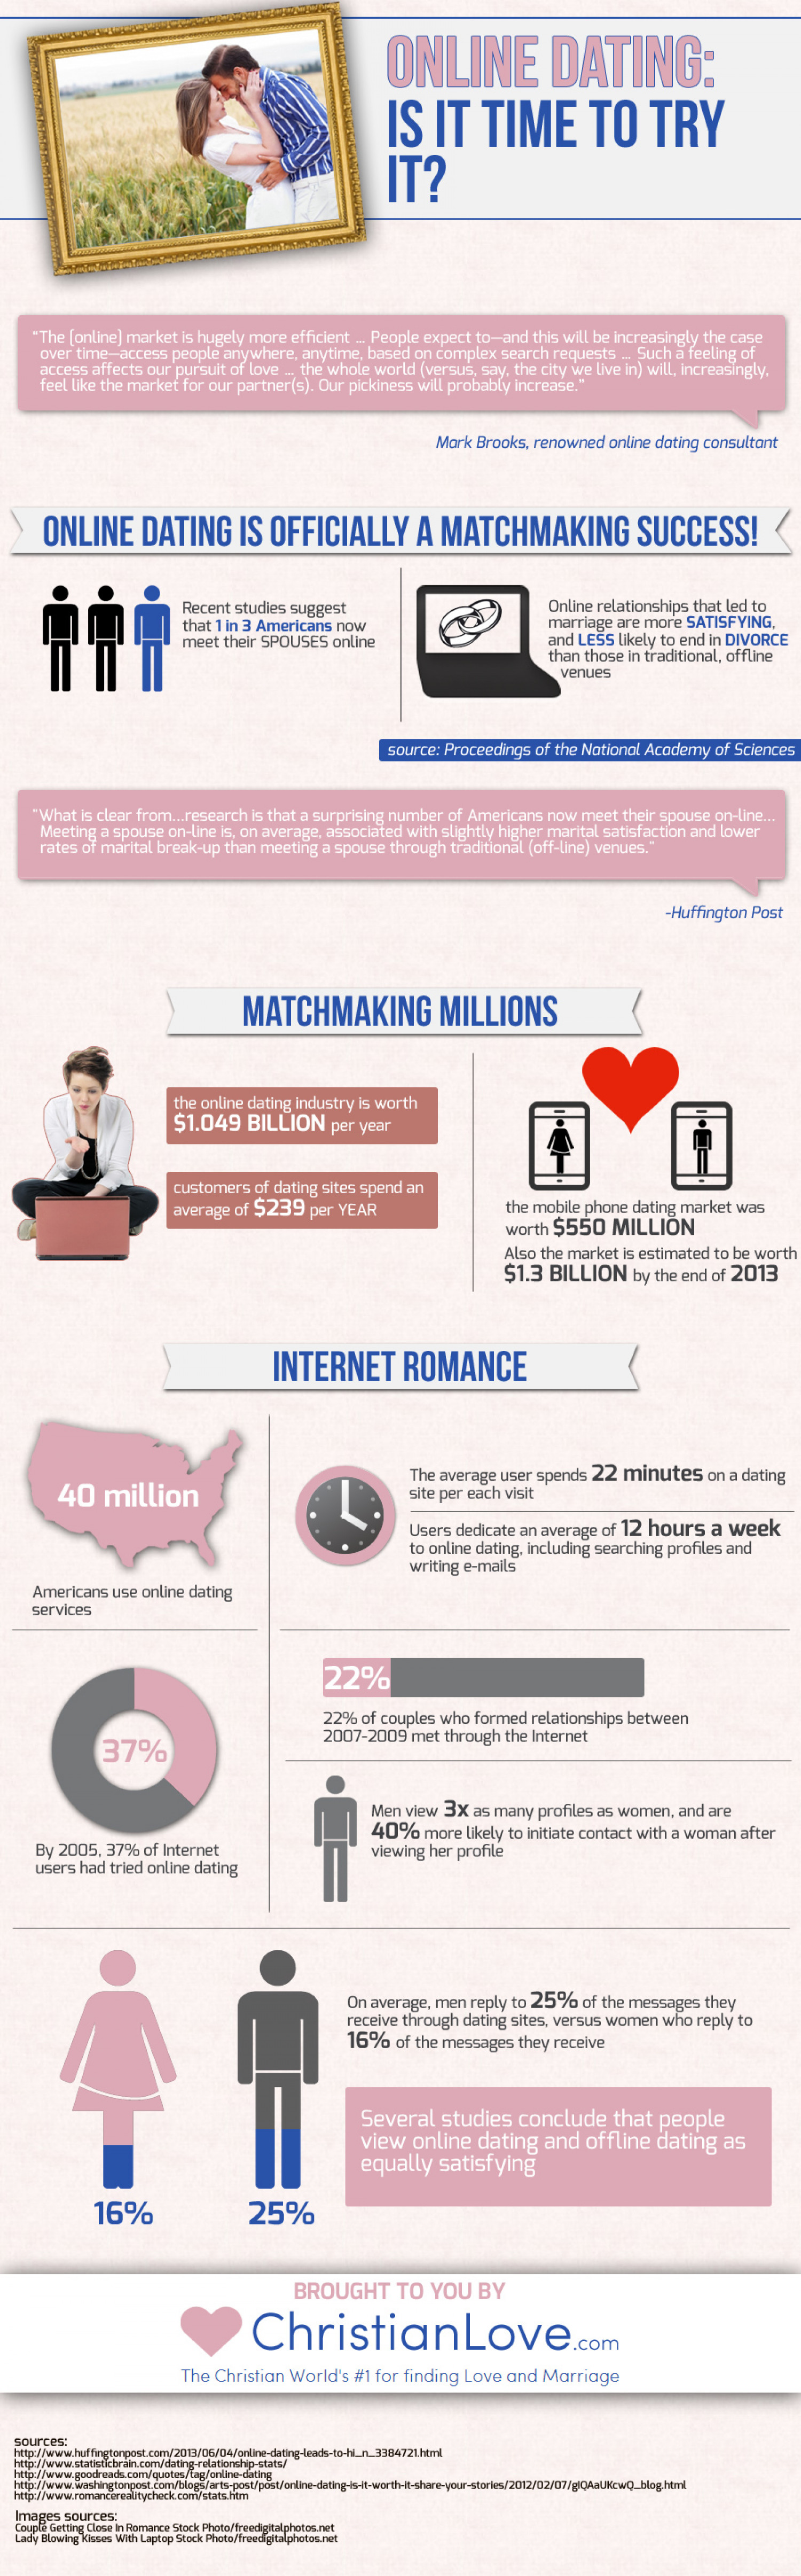 Online Dating: Is it Time to Try it? Infographic